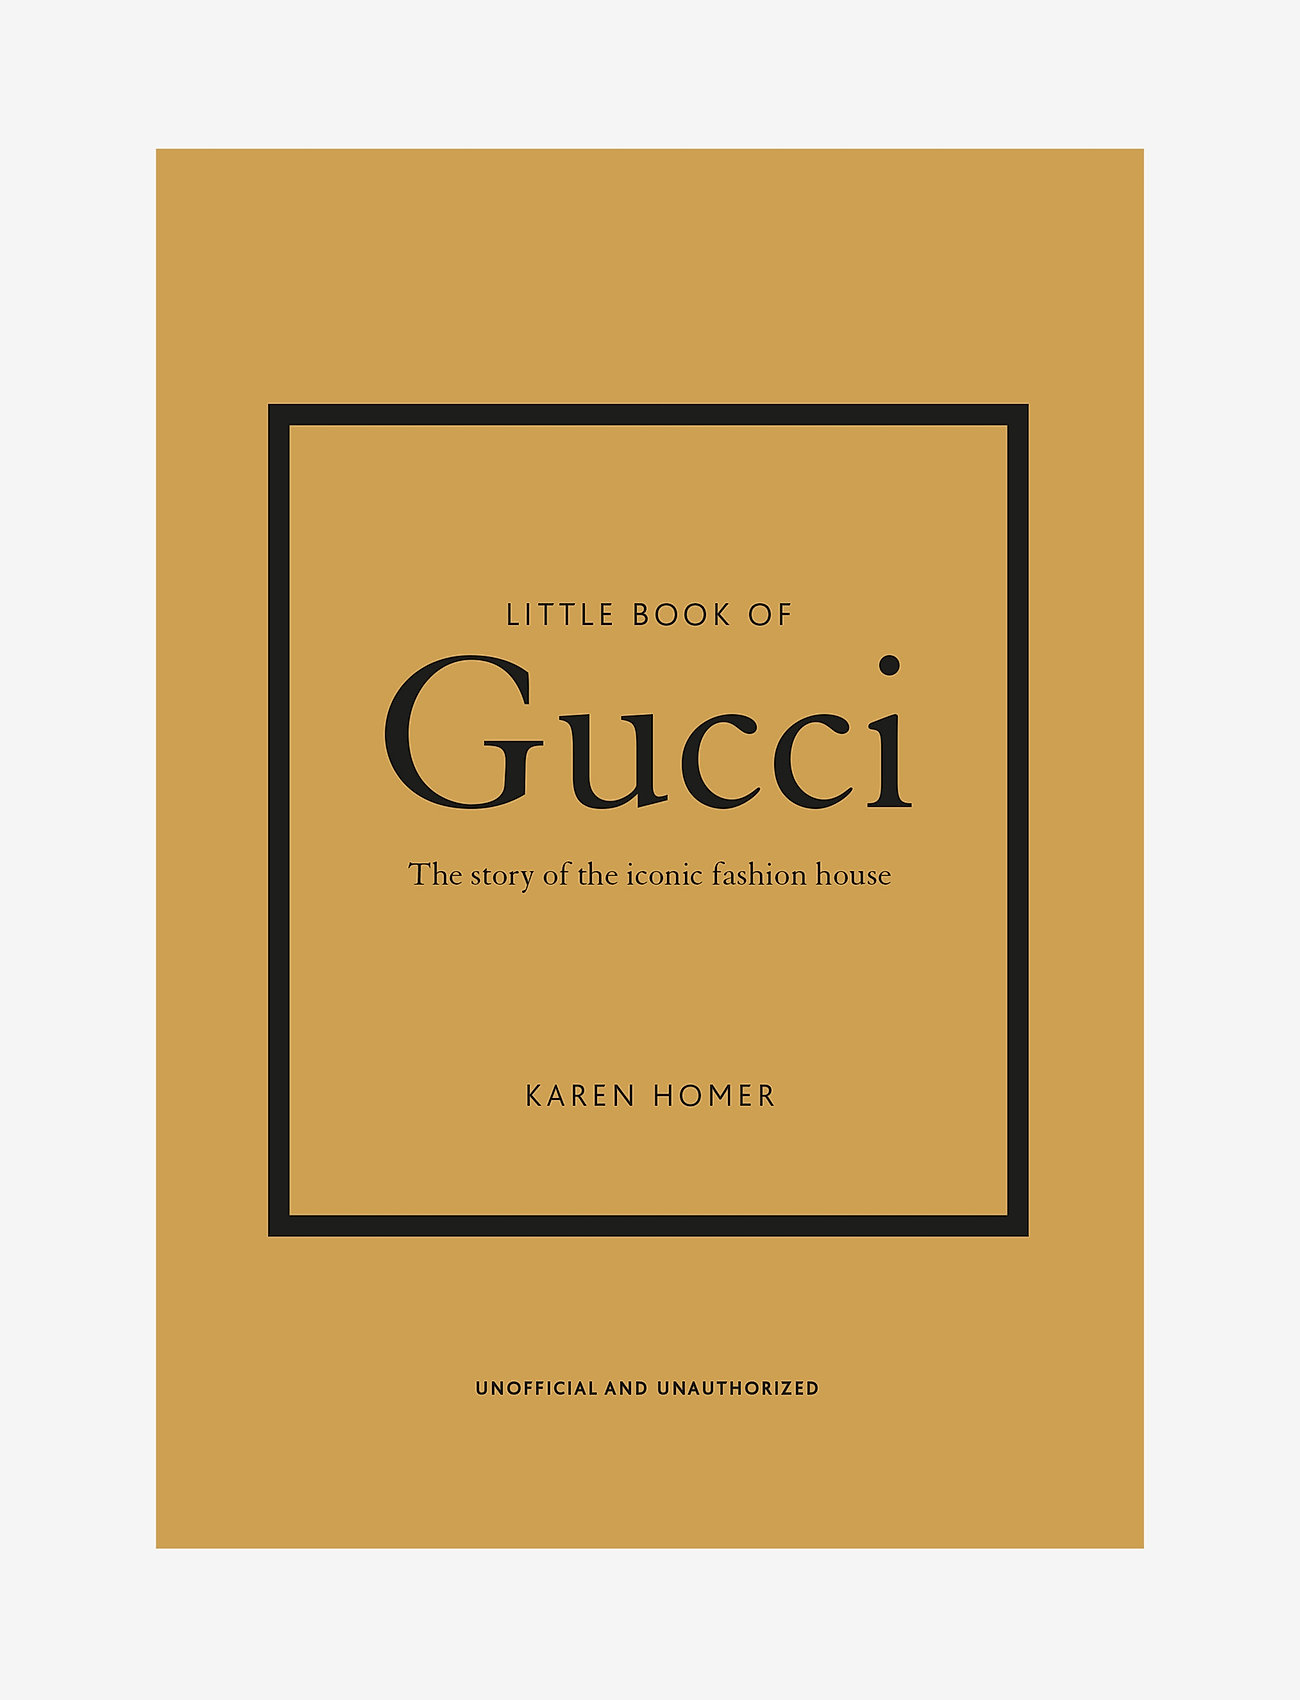 New Mags - Little Book of Gucci - shop etter pris - gold - 0